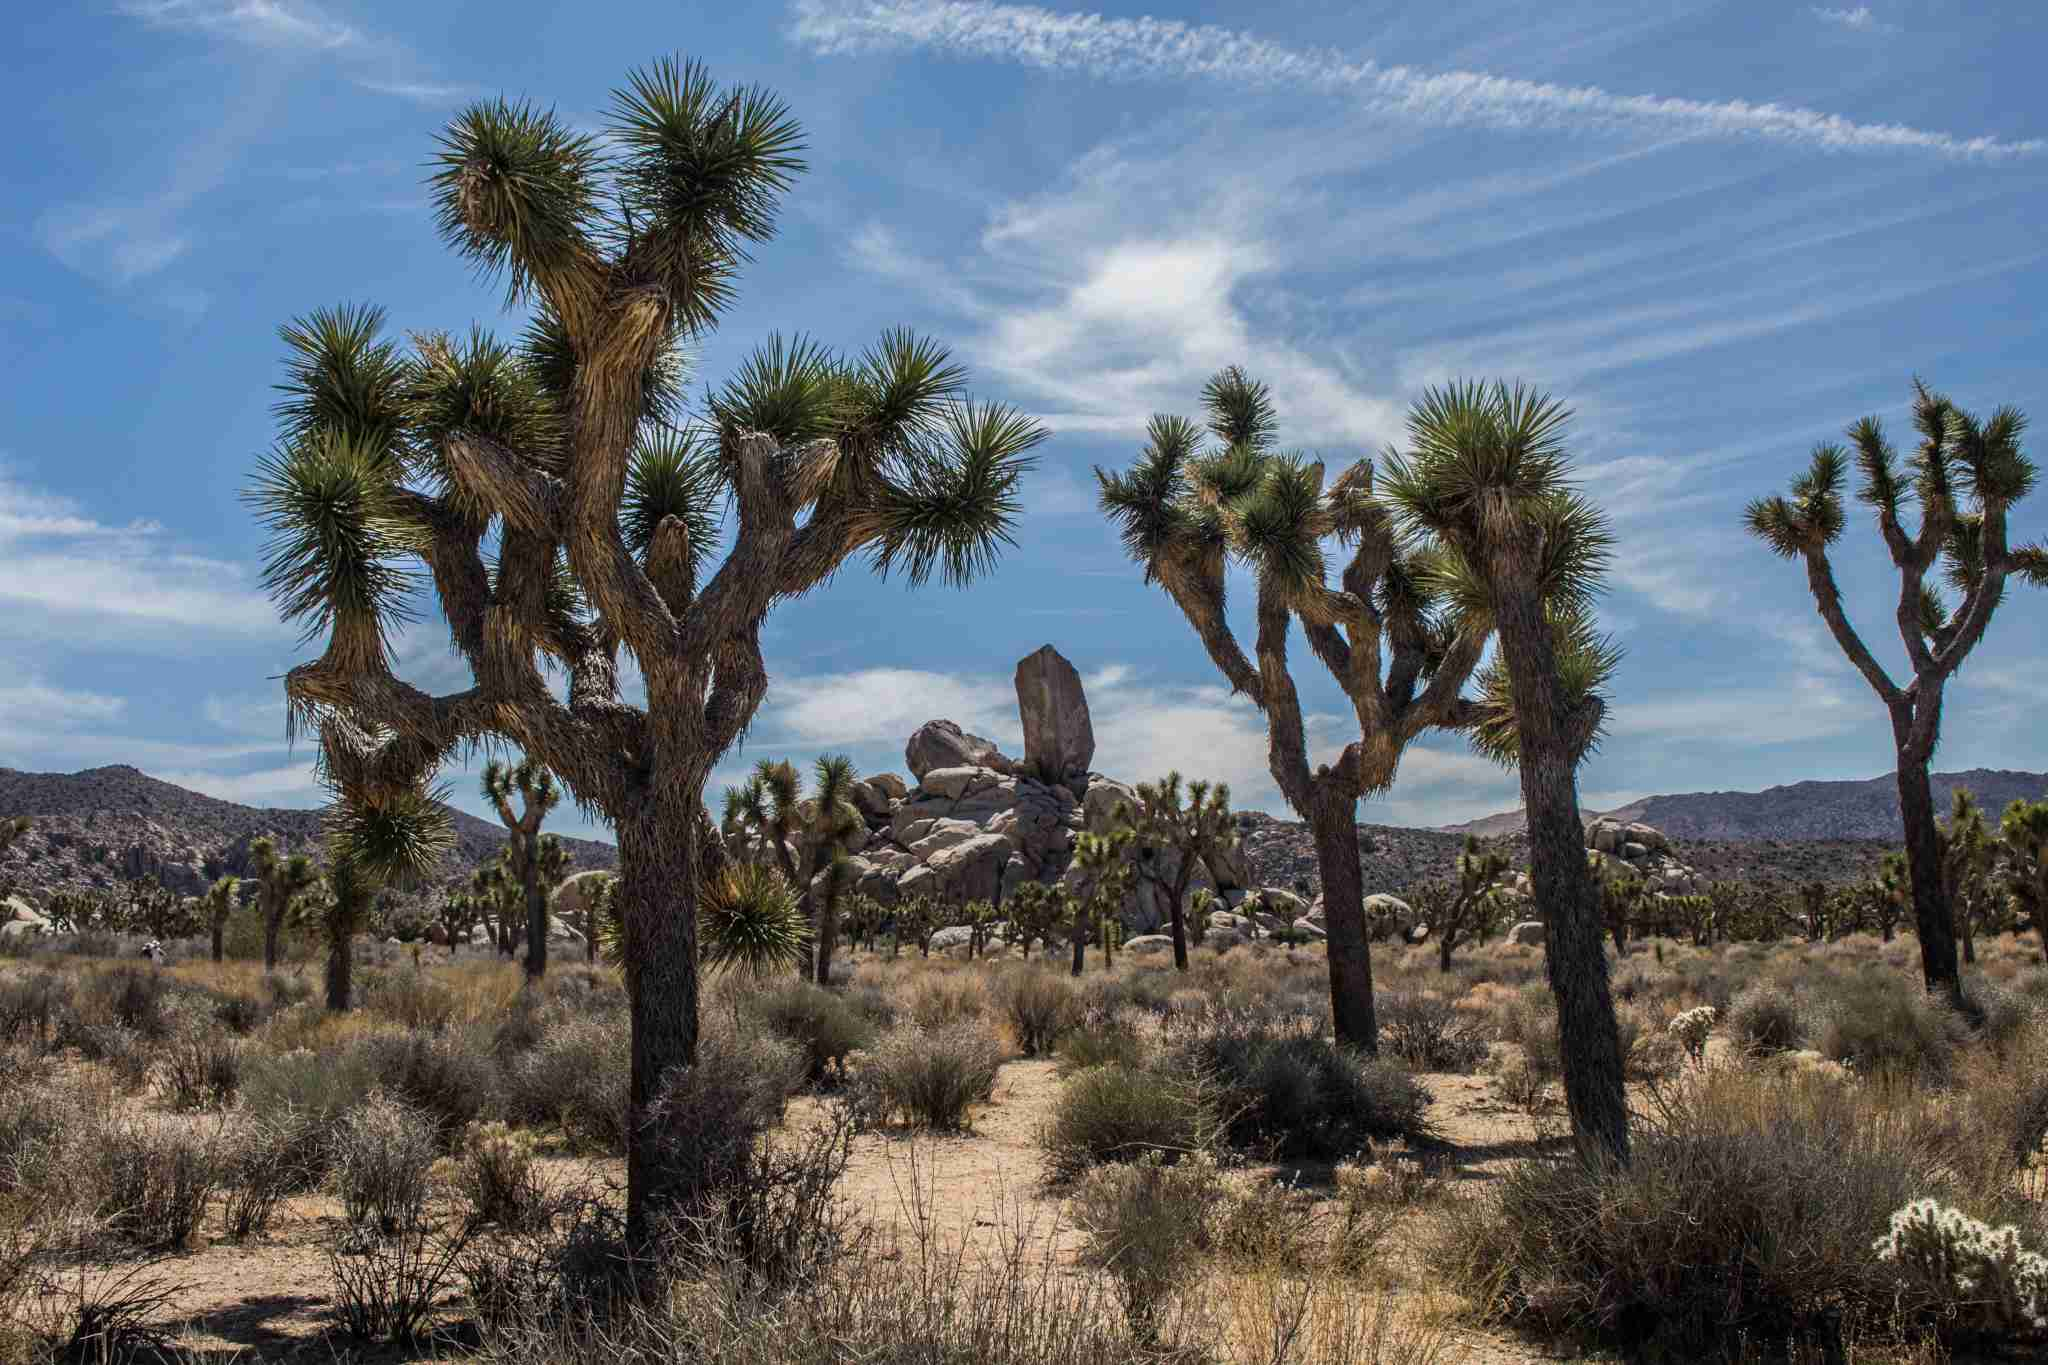 Joshua Tree National Park. Photo by Owen Rupp on Unsplash.